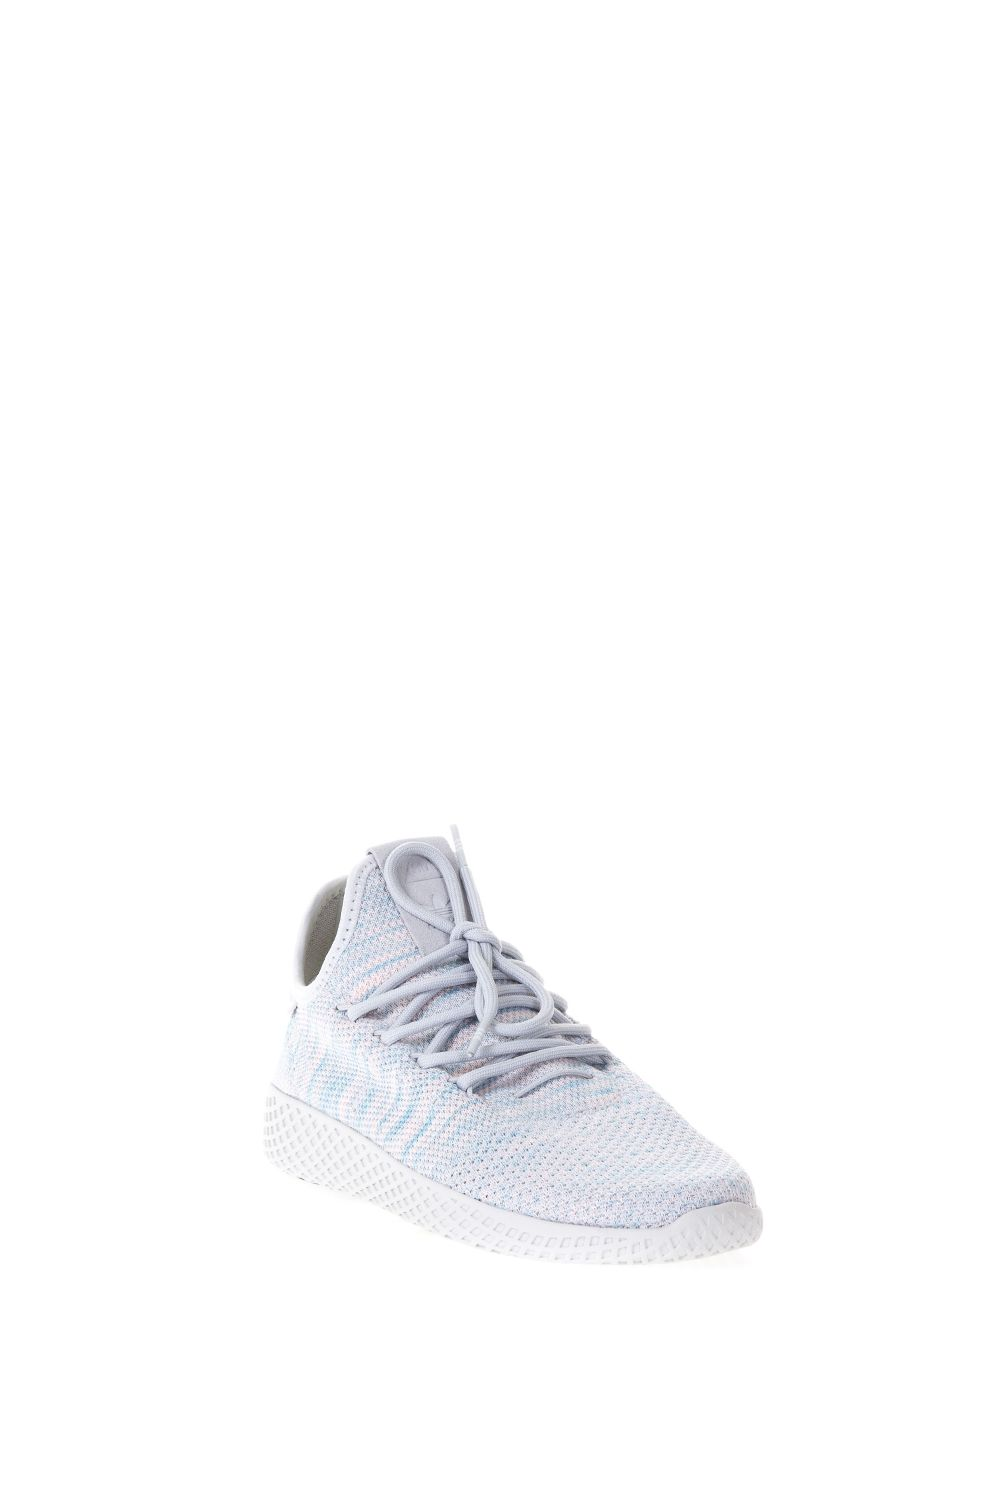 Italist Best For Pharrell The In By Market Williams Price Adidas wCdr7qw 782468f650